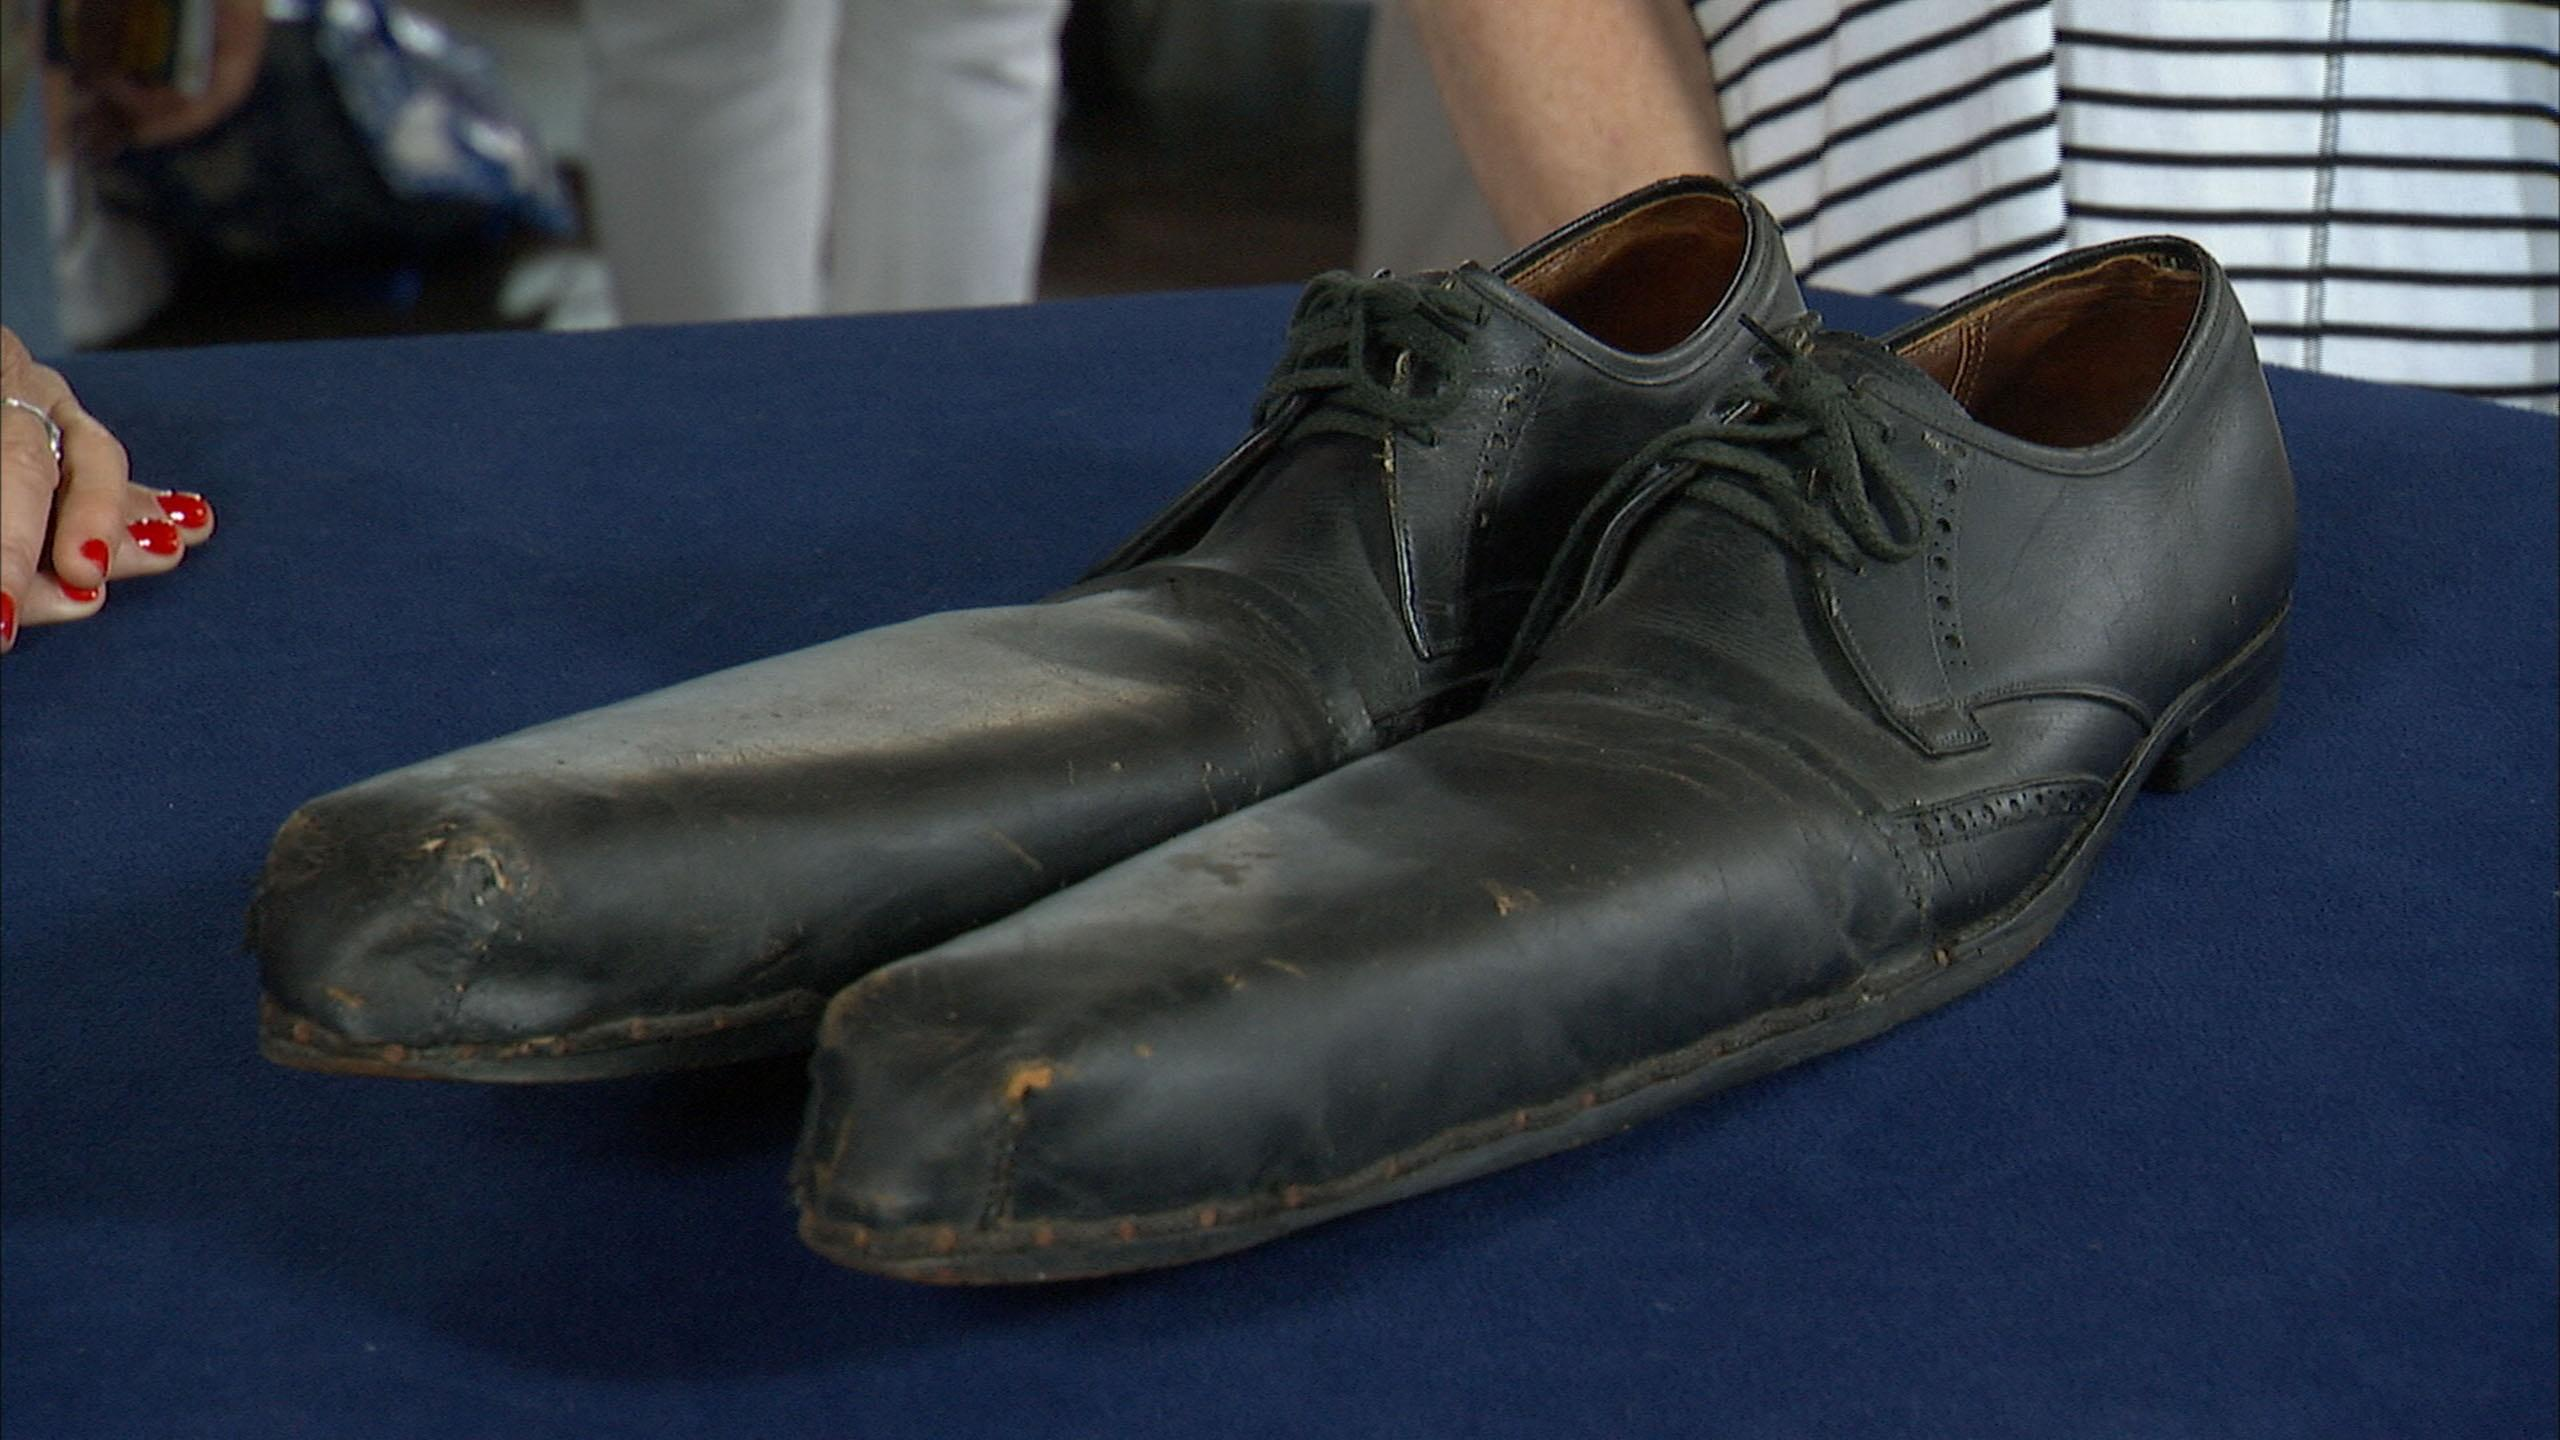 Appraisal: Clown Shoes, ca. 1940